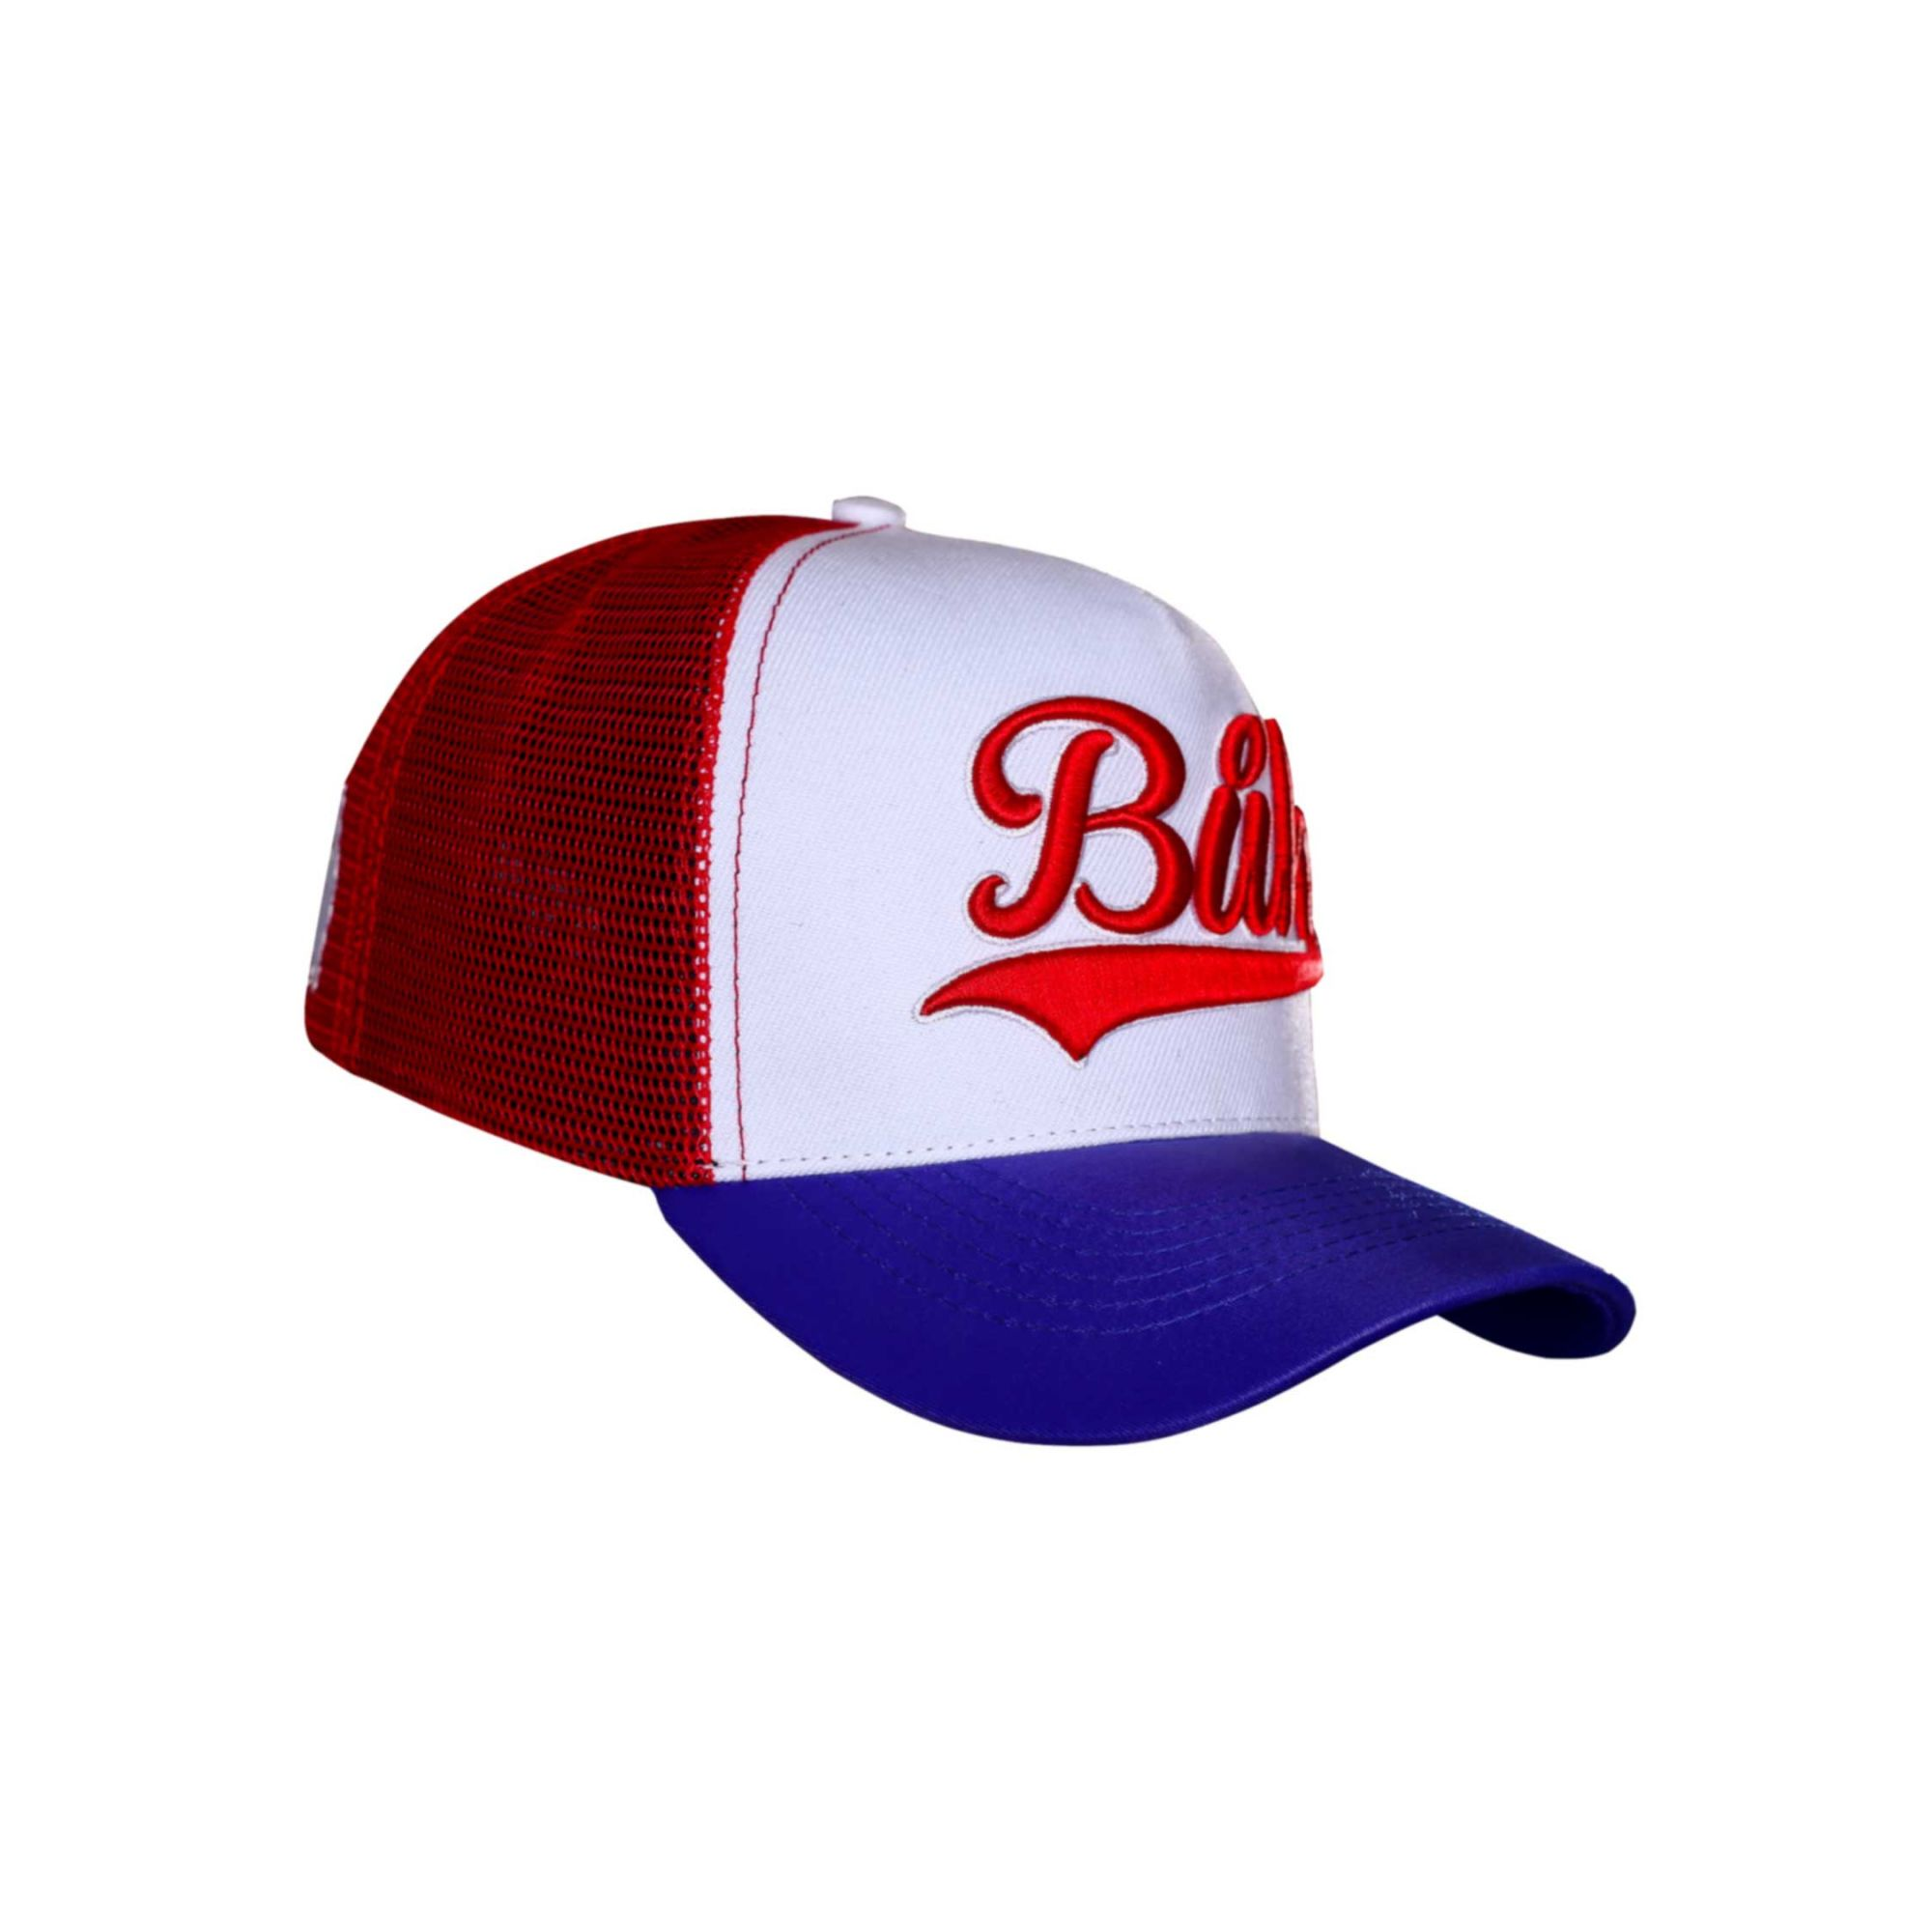 Boné Buh TBT Trucker Red & Blue